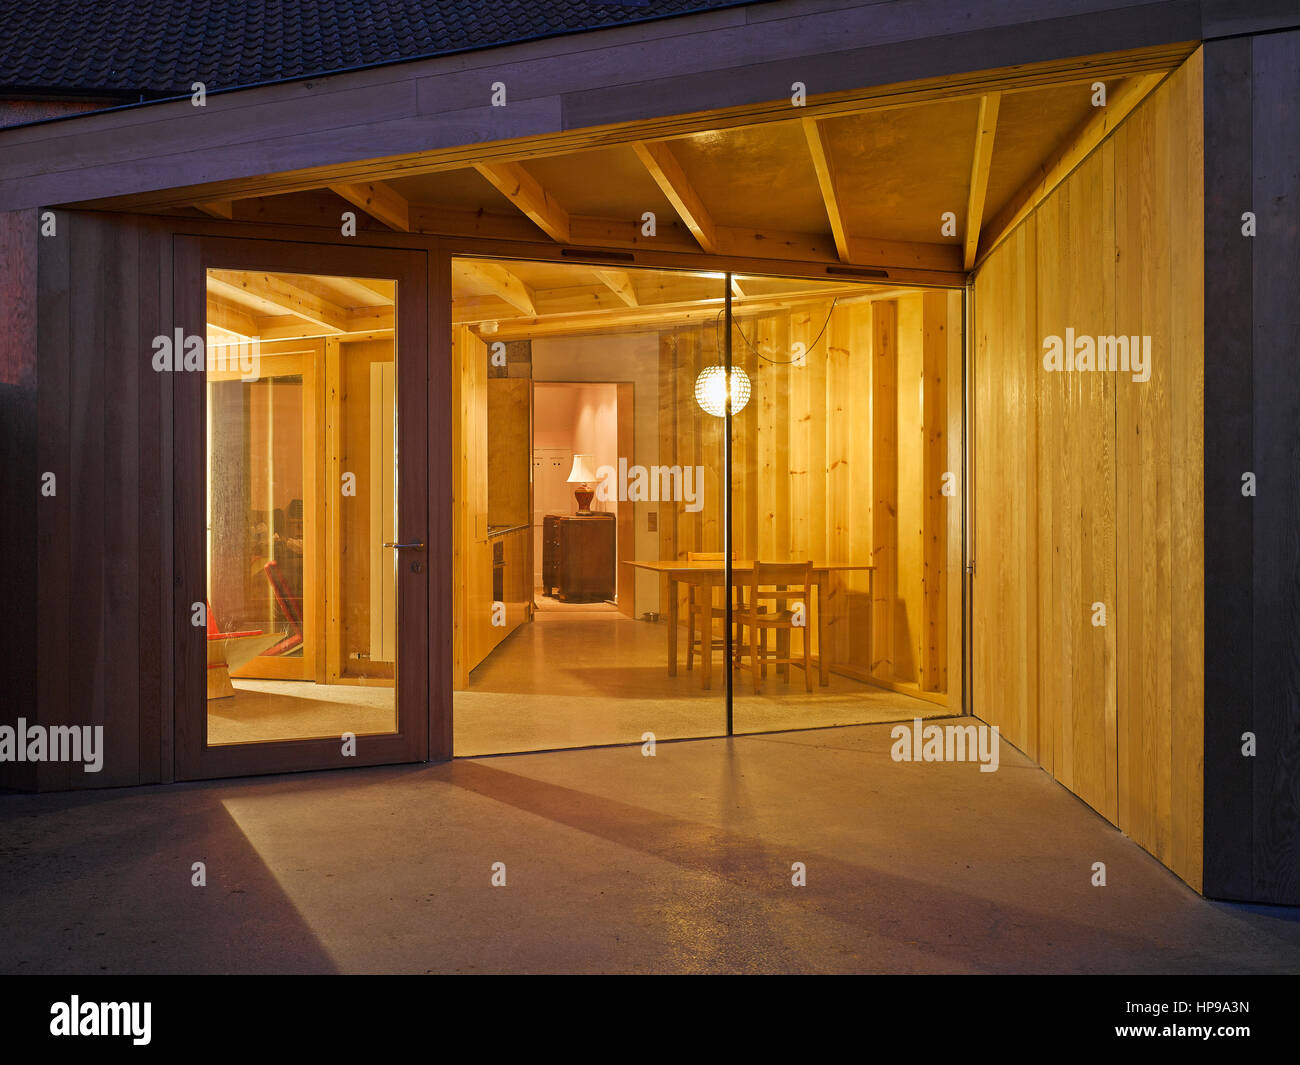 Exterior view at dusk showing interior of extension leading to sitting room. Rutland Avenue, Crumlin, Ireland. Architect: - Stock Image